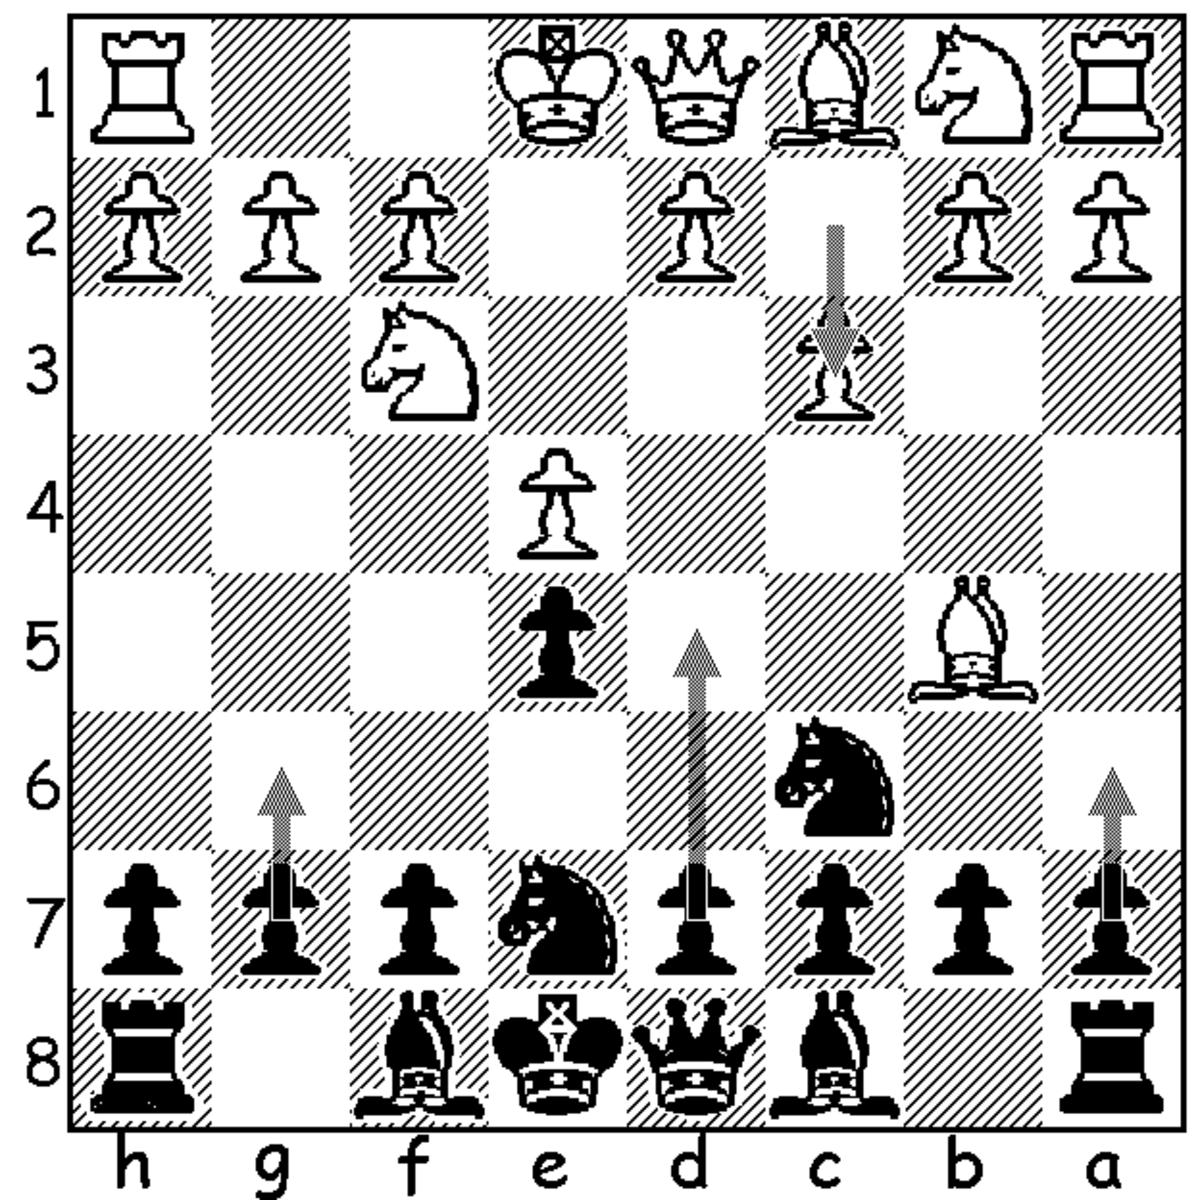 This image shows black's three best fourth move options following 4.c3. They are, in order of my preference, 4...a6, 4...d5 and 4...g6.